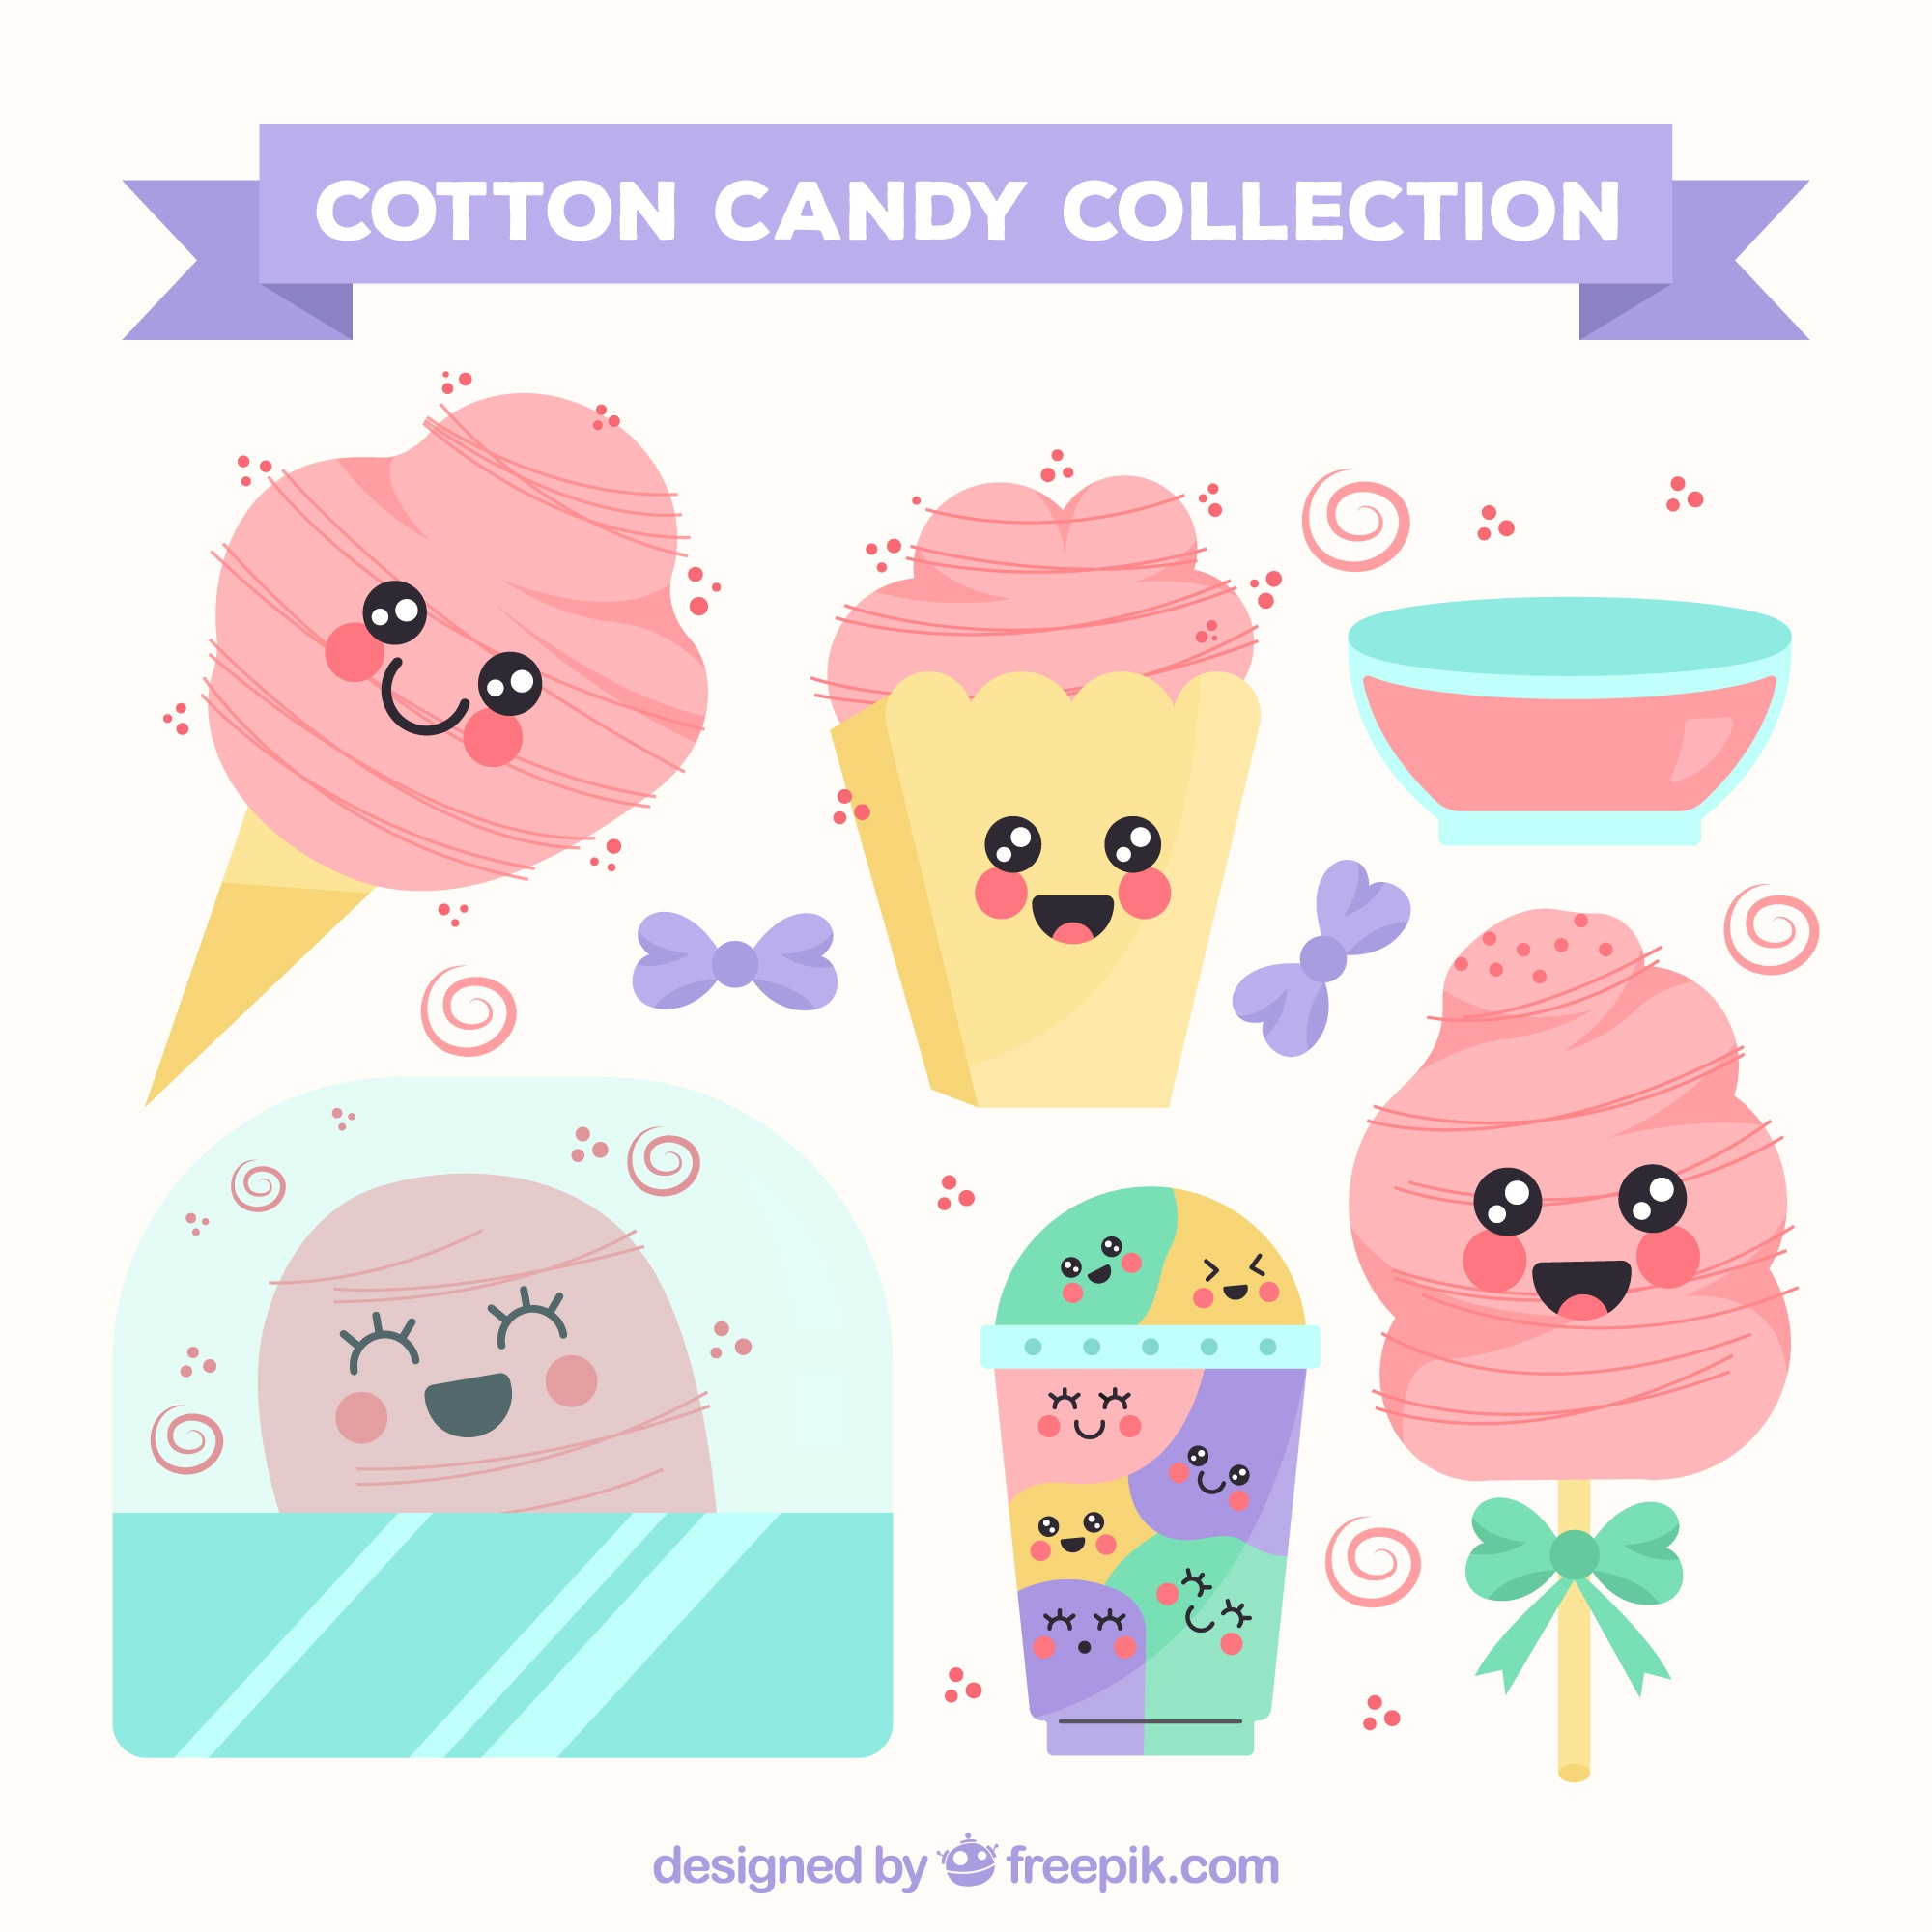 Collection of cotton candy with smiley faces